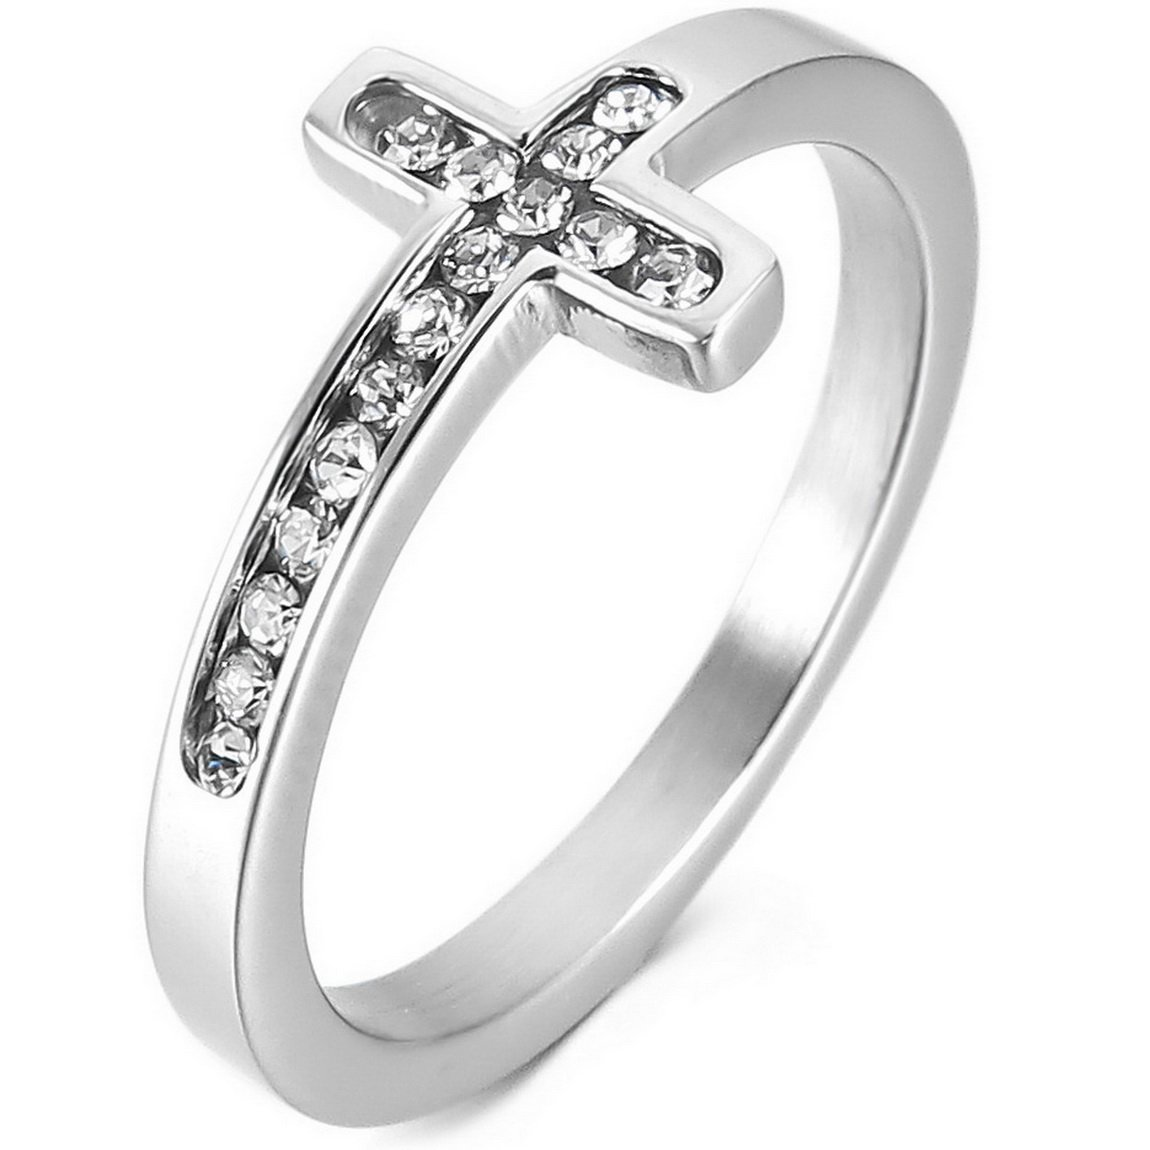 INBLUE Women's Stainless Steel Ring Band CZ Silver Tone Cross Wedding Size8